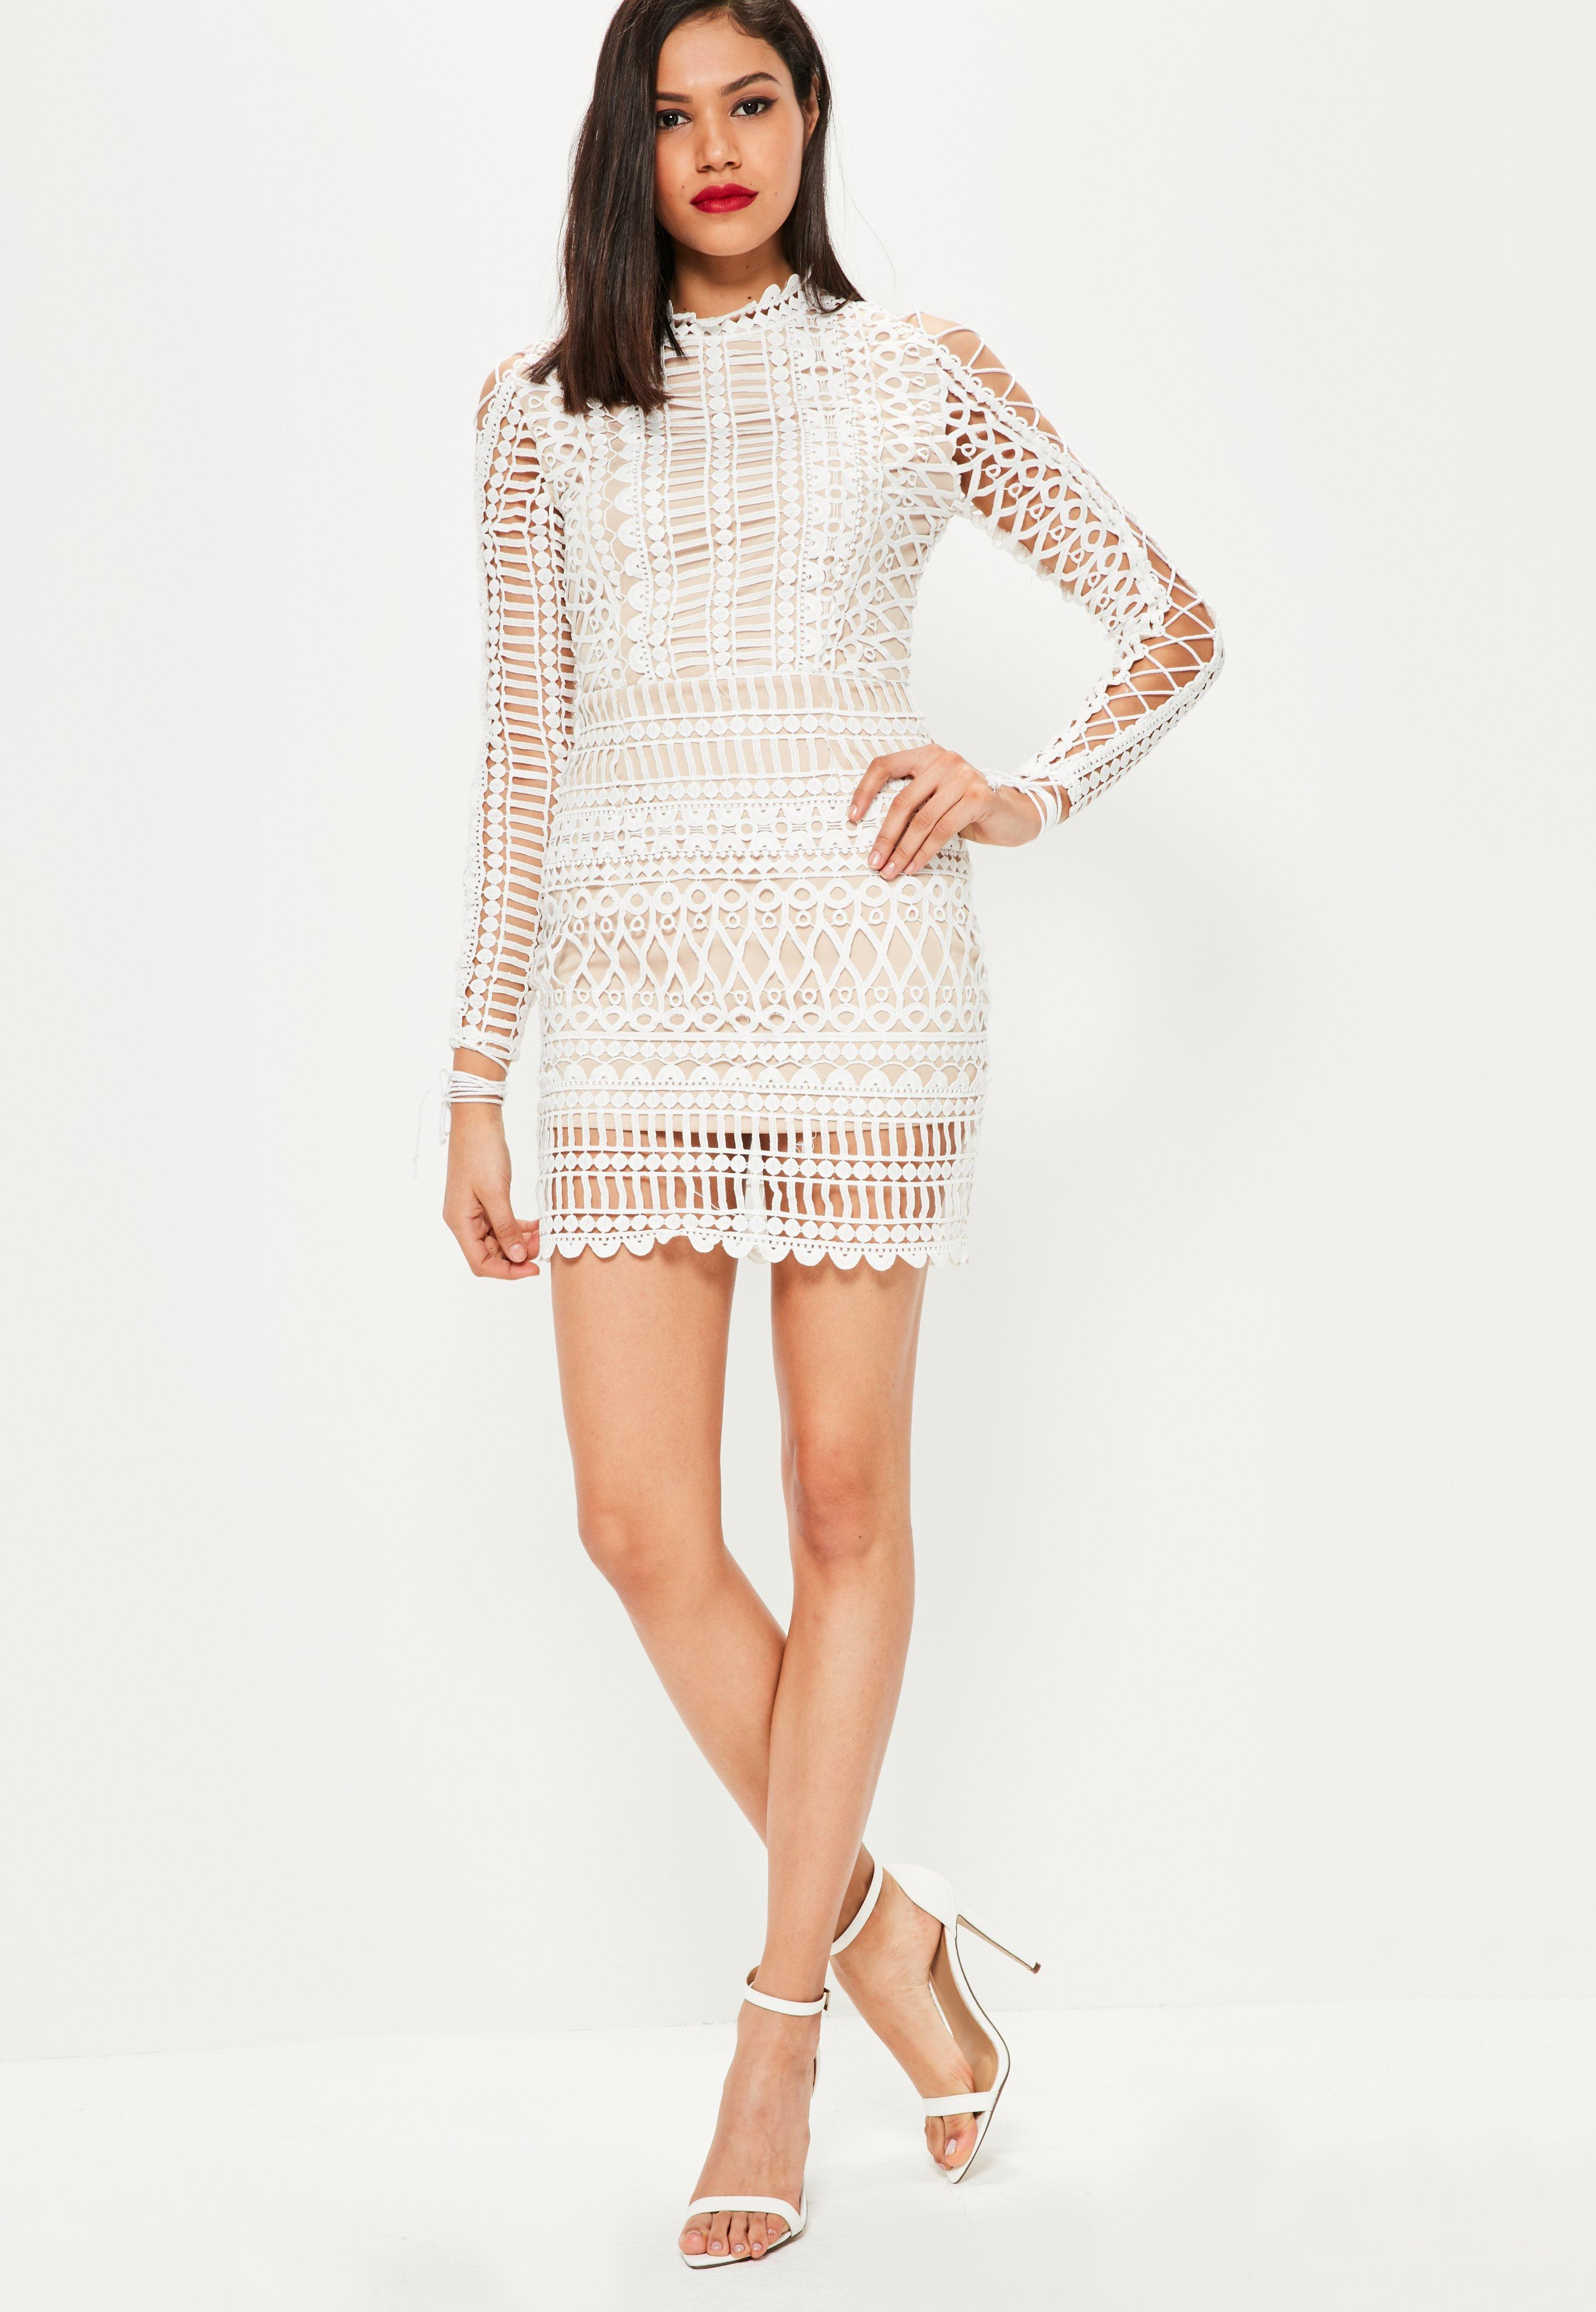 a7bcf6f82658 Lyst - Missguided White Lace High Neck Lace Up Sleeve Bodycon Dress ...